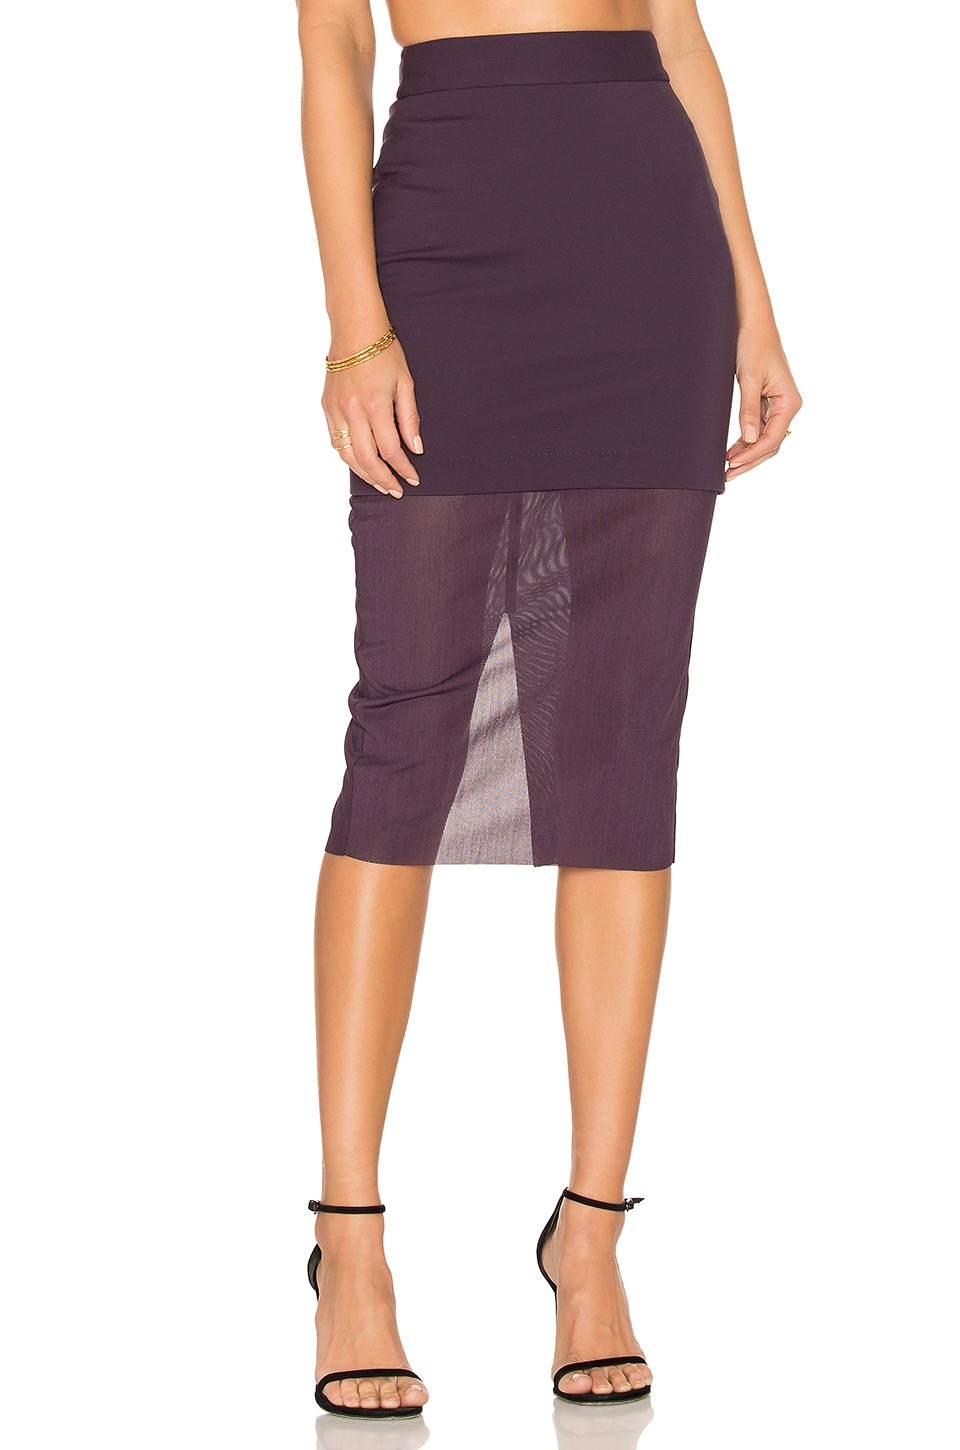 ELLIATT Allure Skirt in Plum